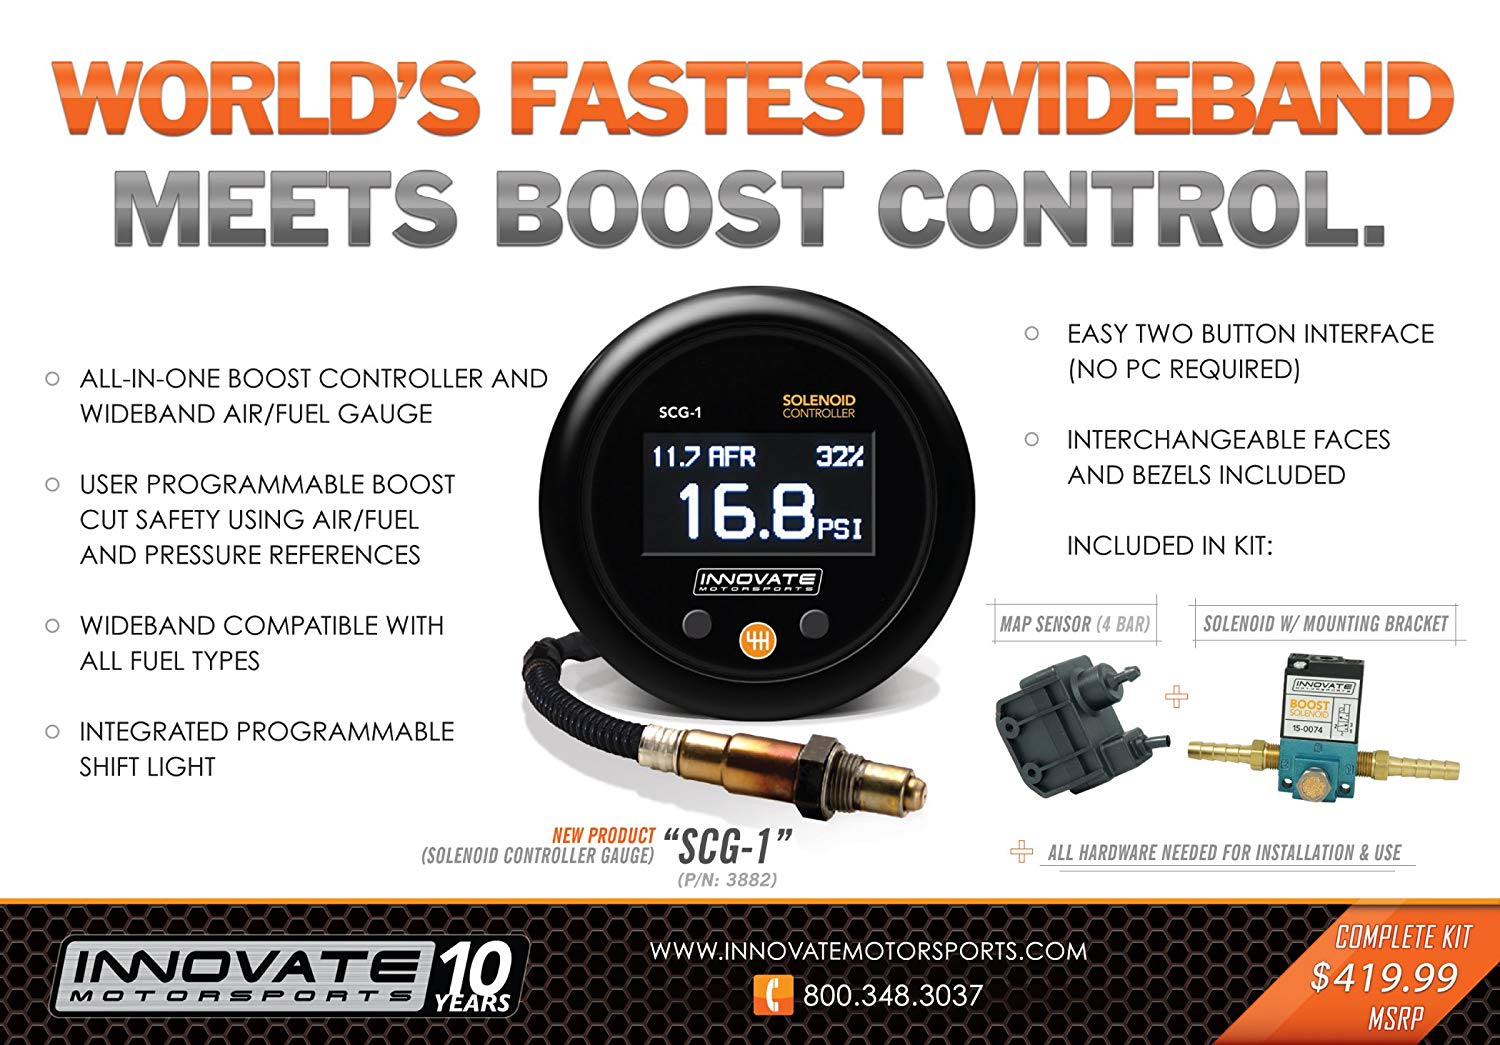 Innovate Motorsports (3882 SCG-1 Solenoid Boost Controller and Air/Fuel Ratio Gauge Kit